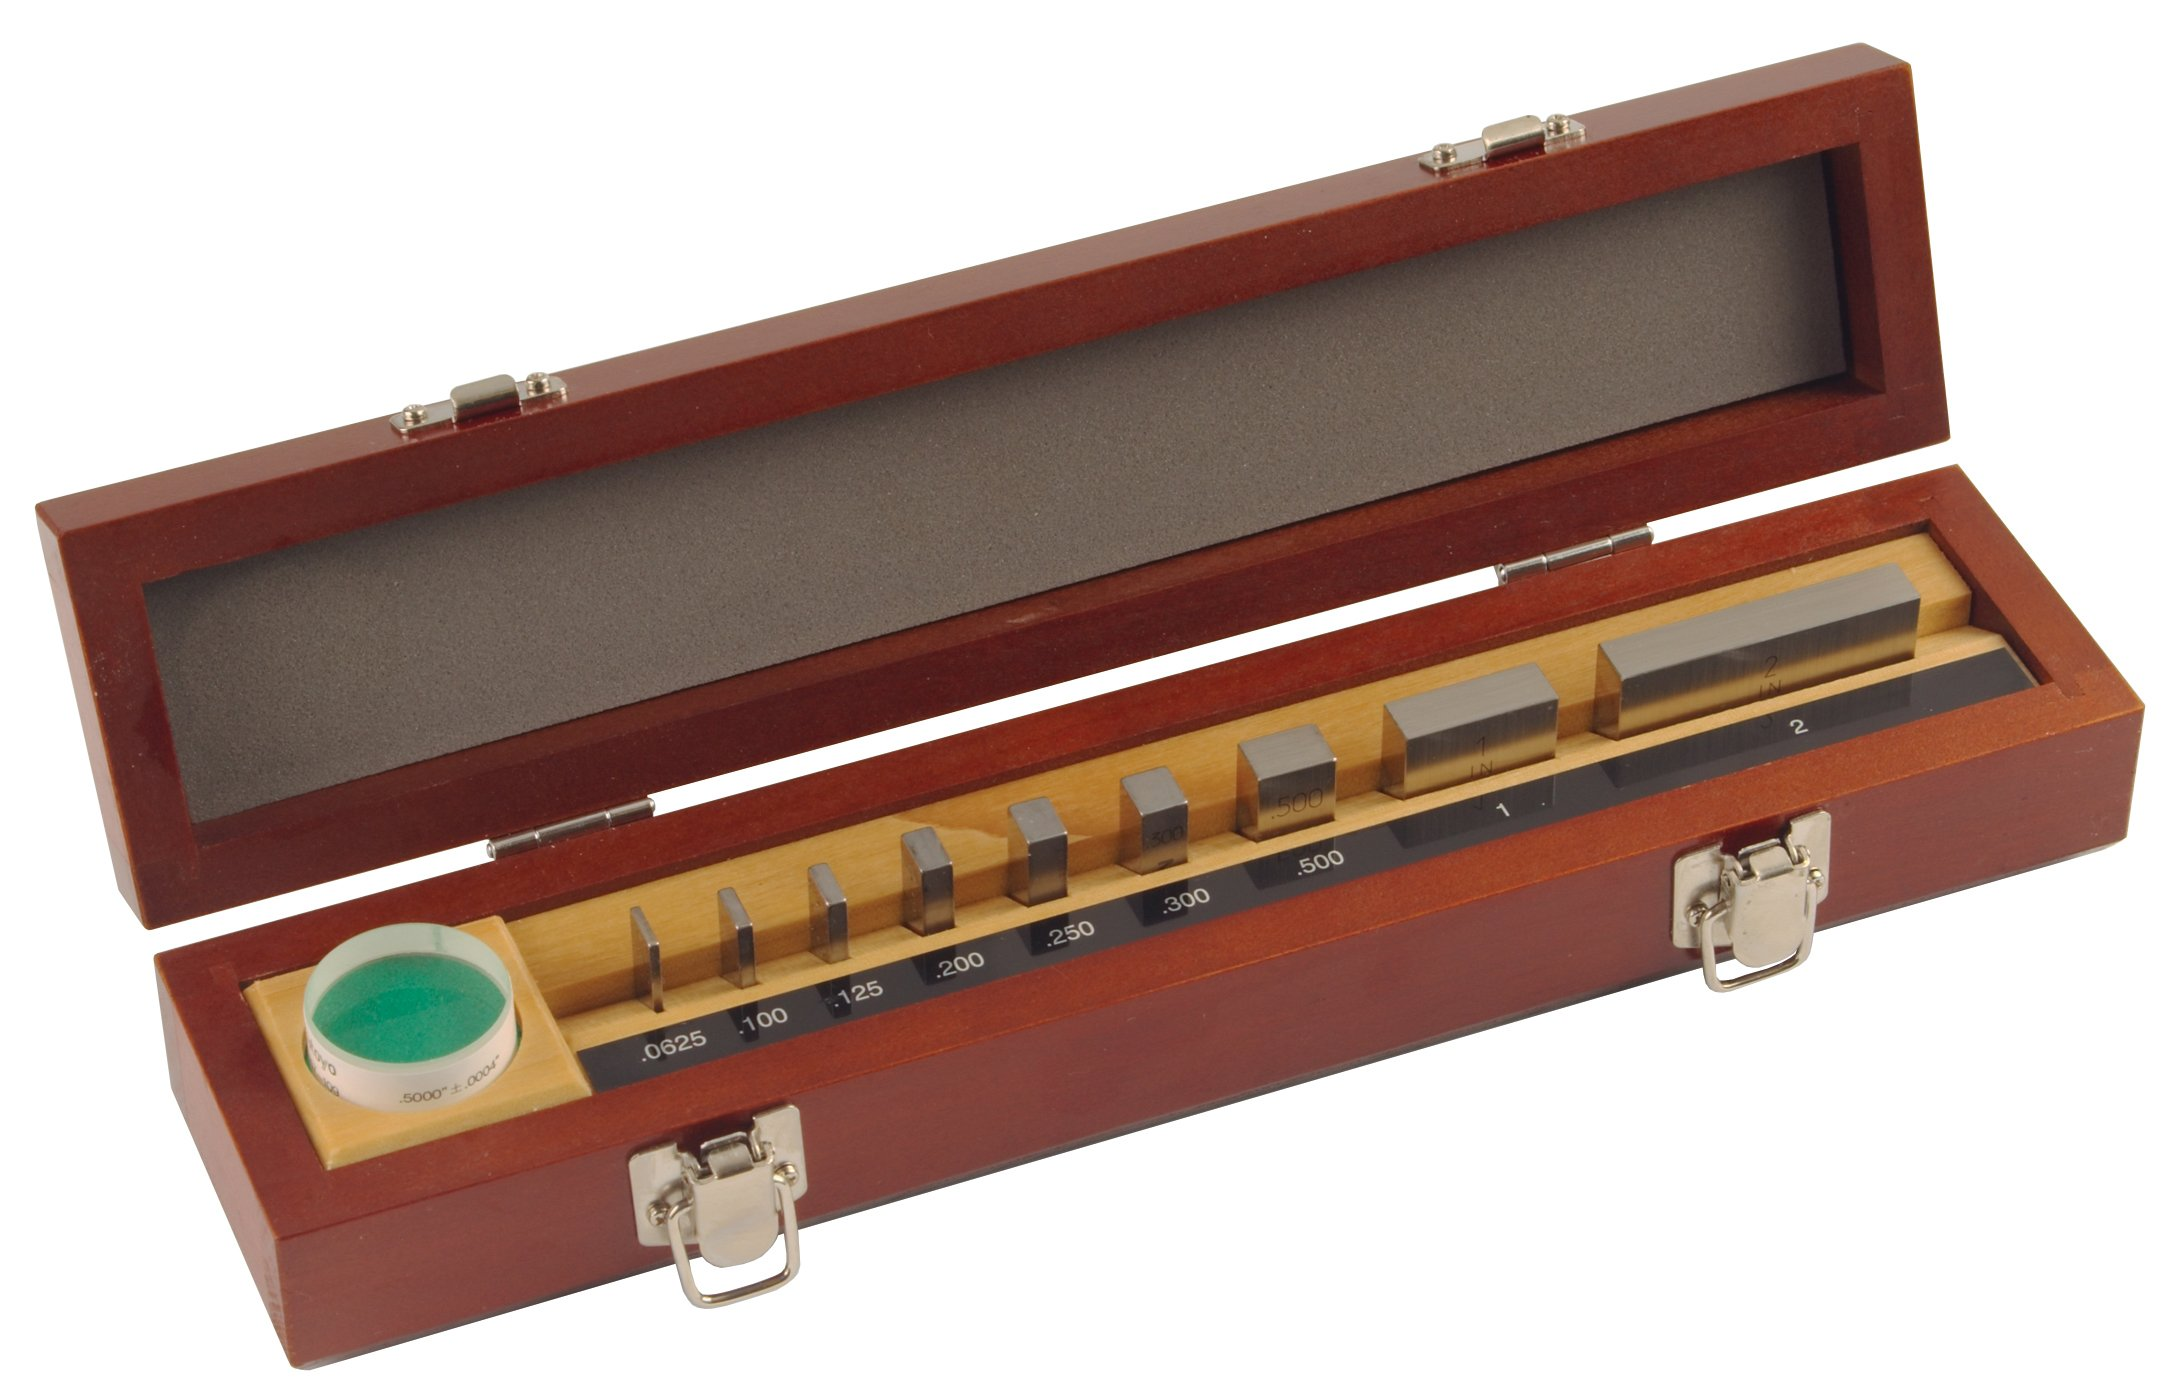 Mitutoyo 516-931-26 Steel Rectangular Micrometer Inspection Gage Block Set, Inch, Optical Parallel, 0.0625''-2.0'' Range (9 Blocks), Meets ASME Grade AS-1 Specifications